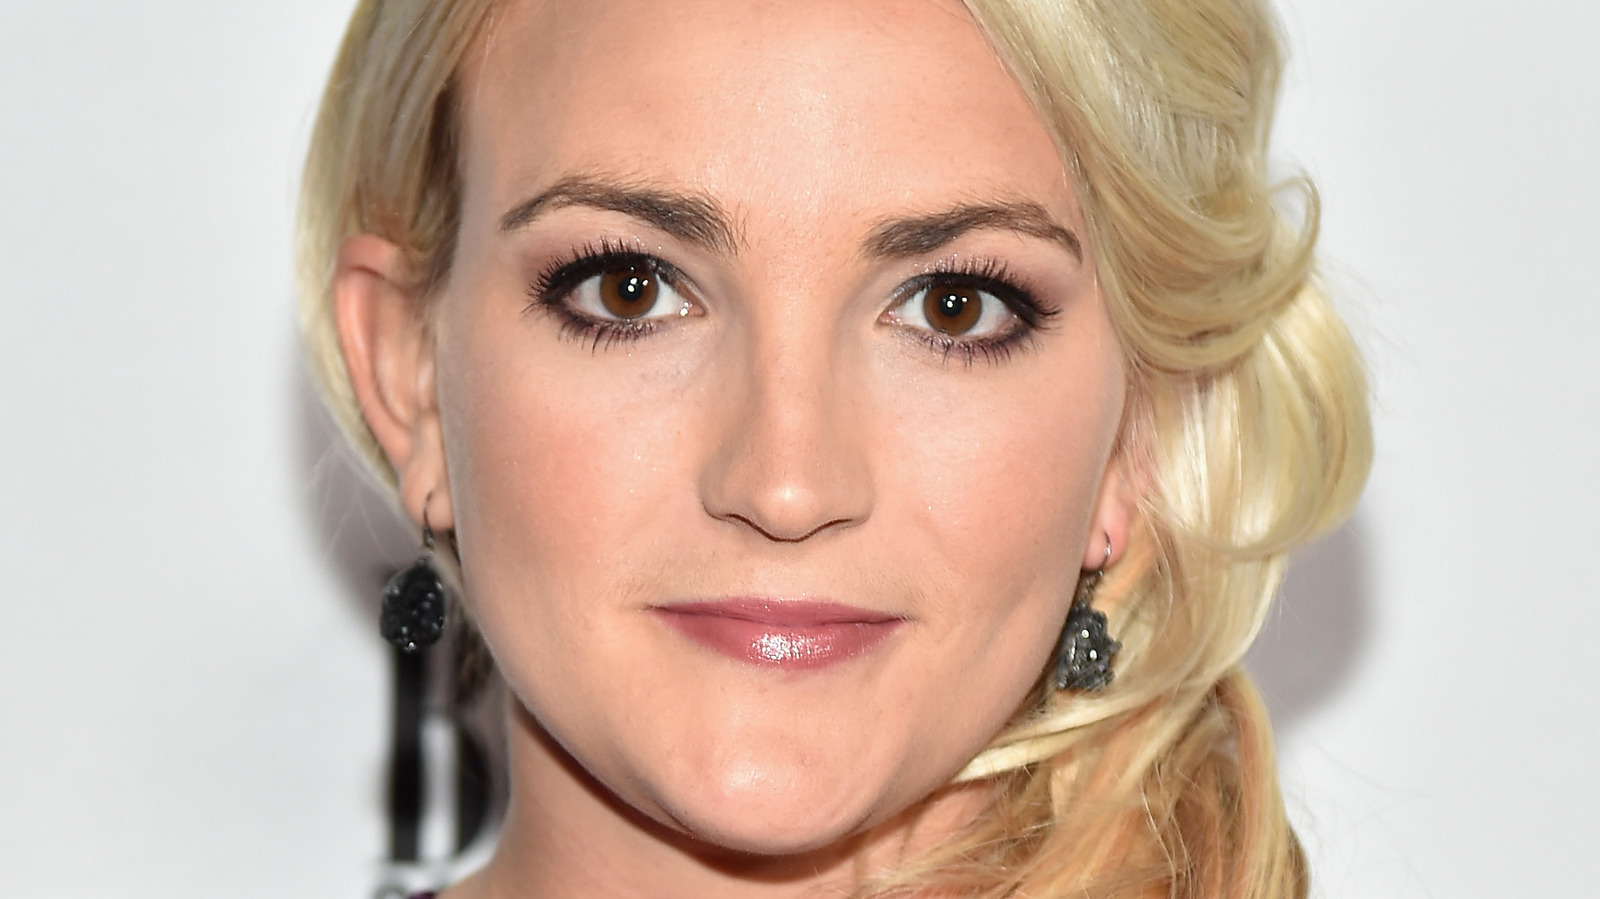 What We Know About Jamie Lynn Spears' Music Career